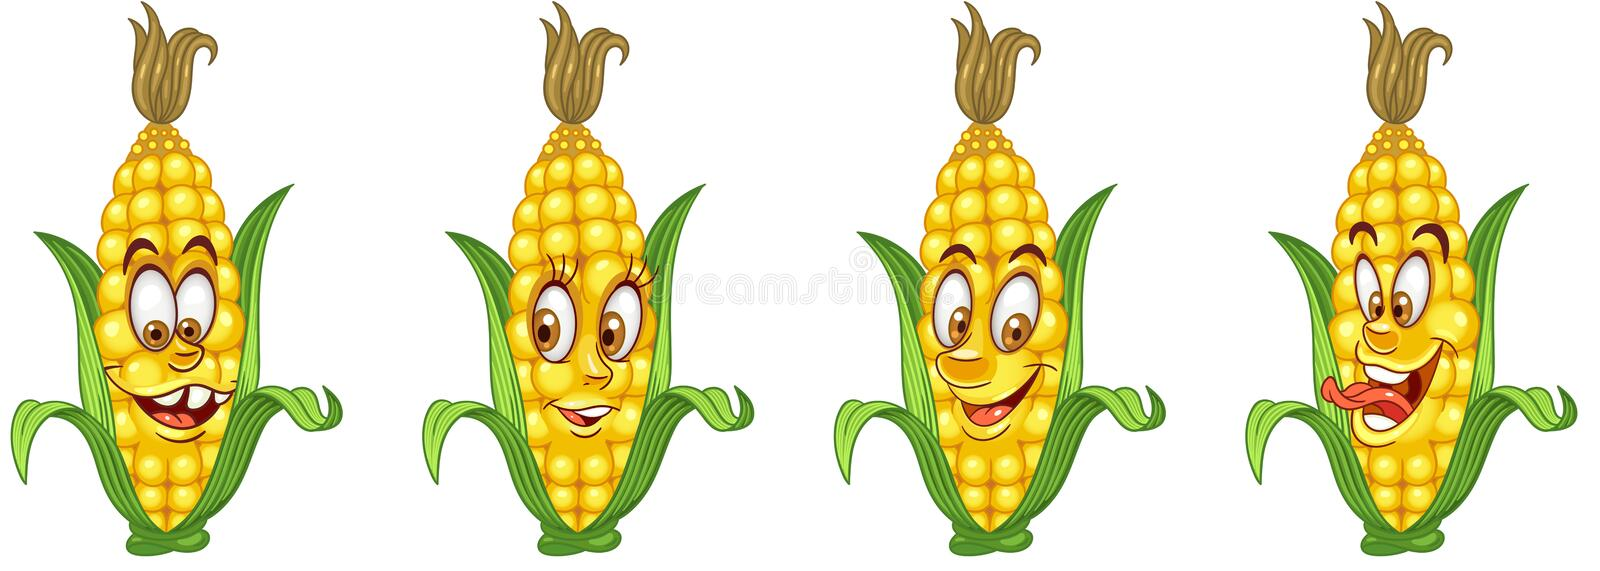 Corn Cob. Vegetable Food concept stock photography